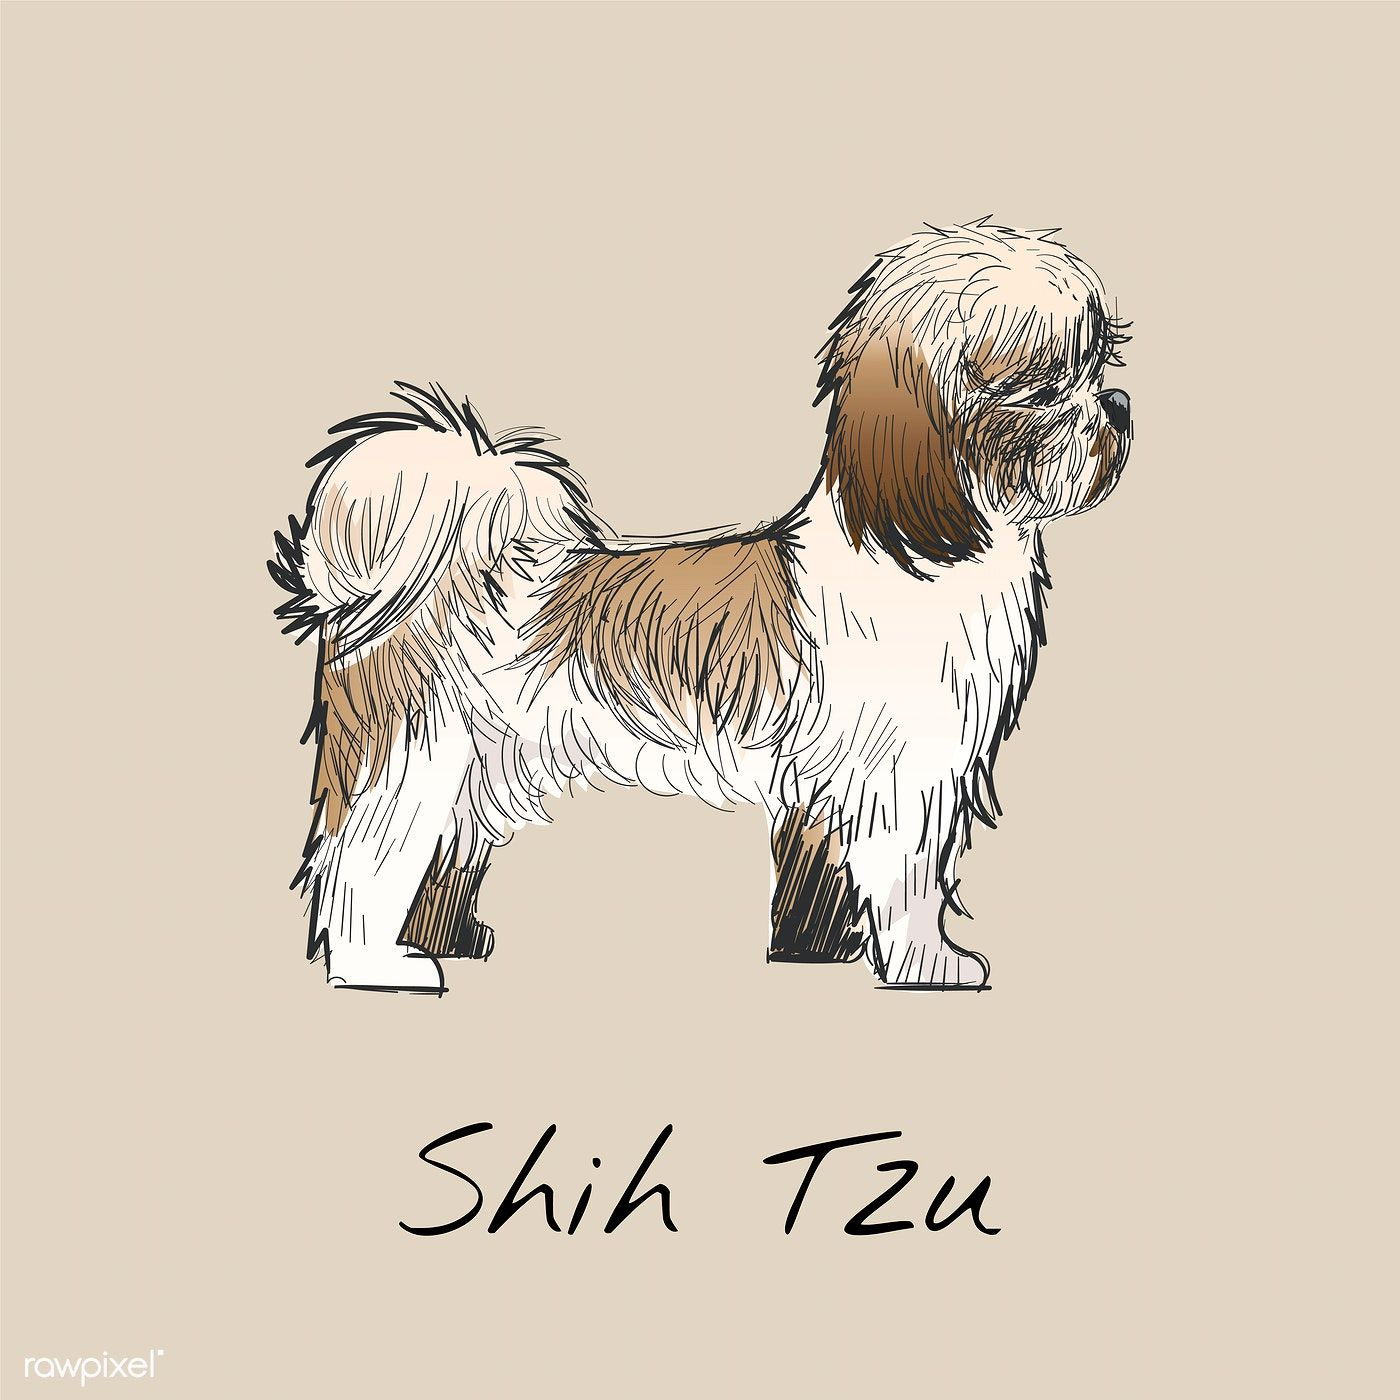 Illustration Drawing Style Of Dog Premium Image By Rawpixel Com Niwat In 2020 Drawings Illustration Fashion Drawing